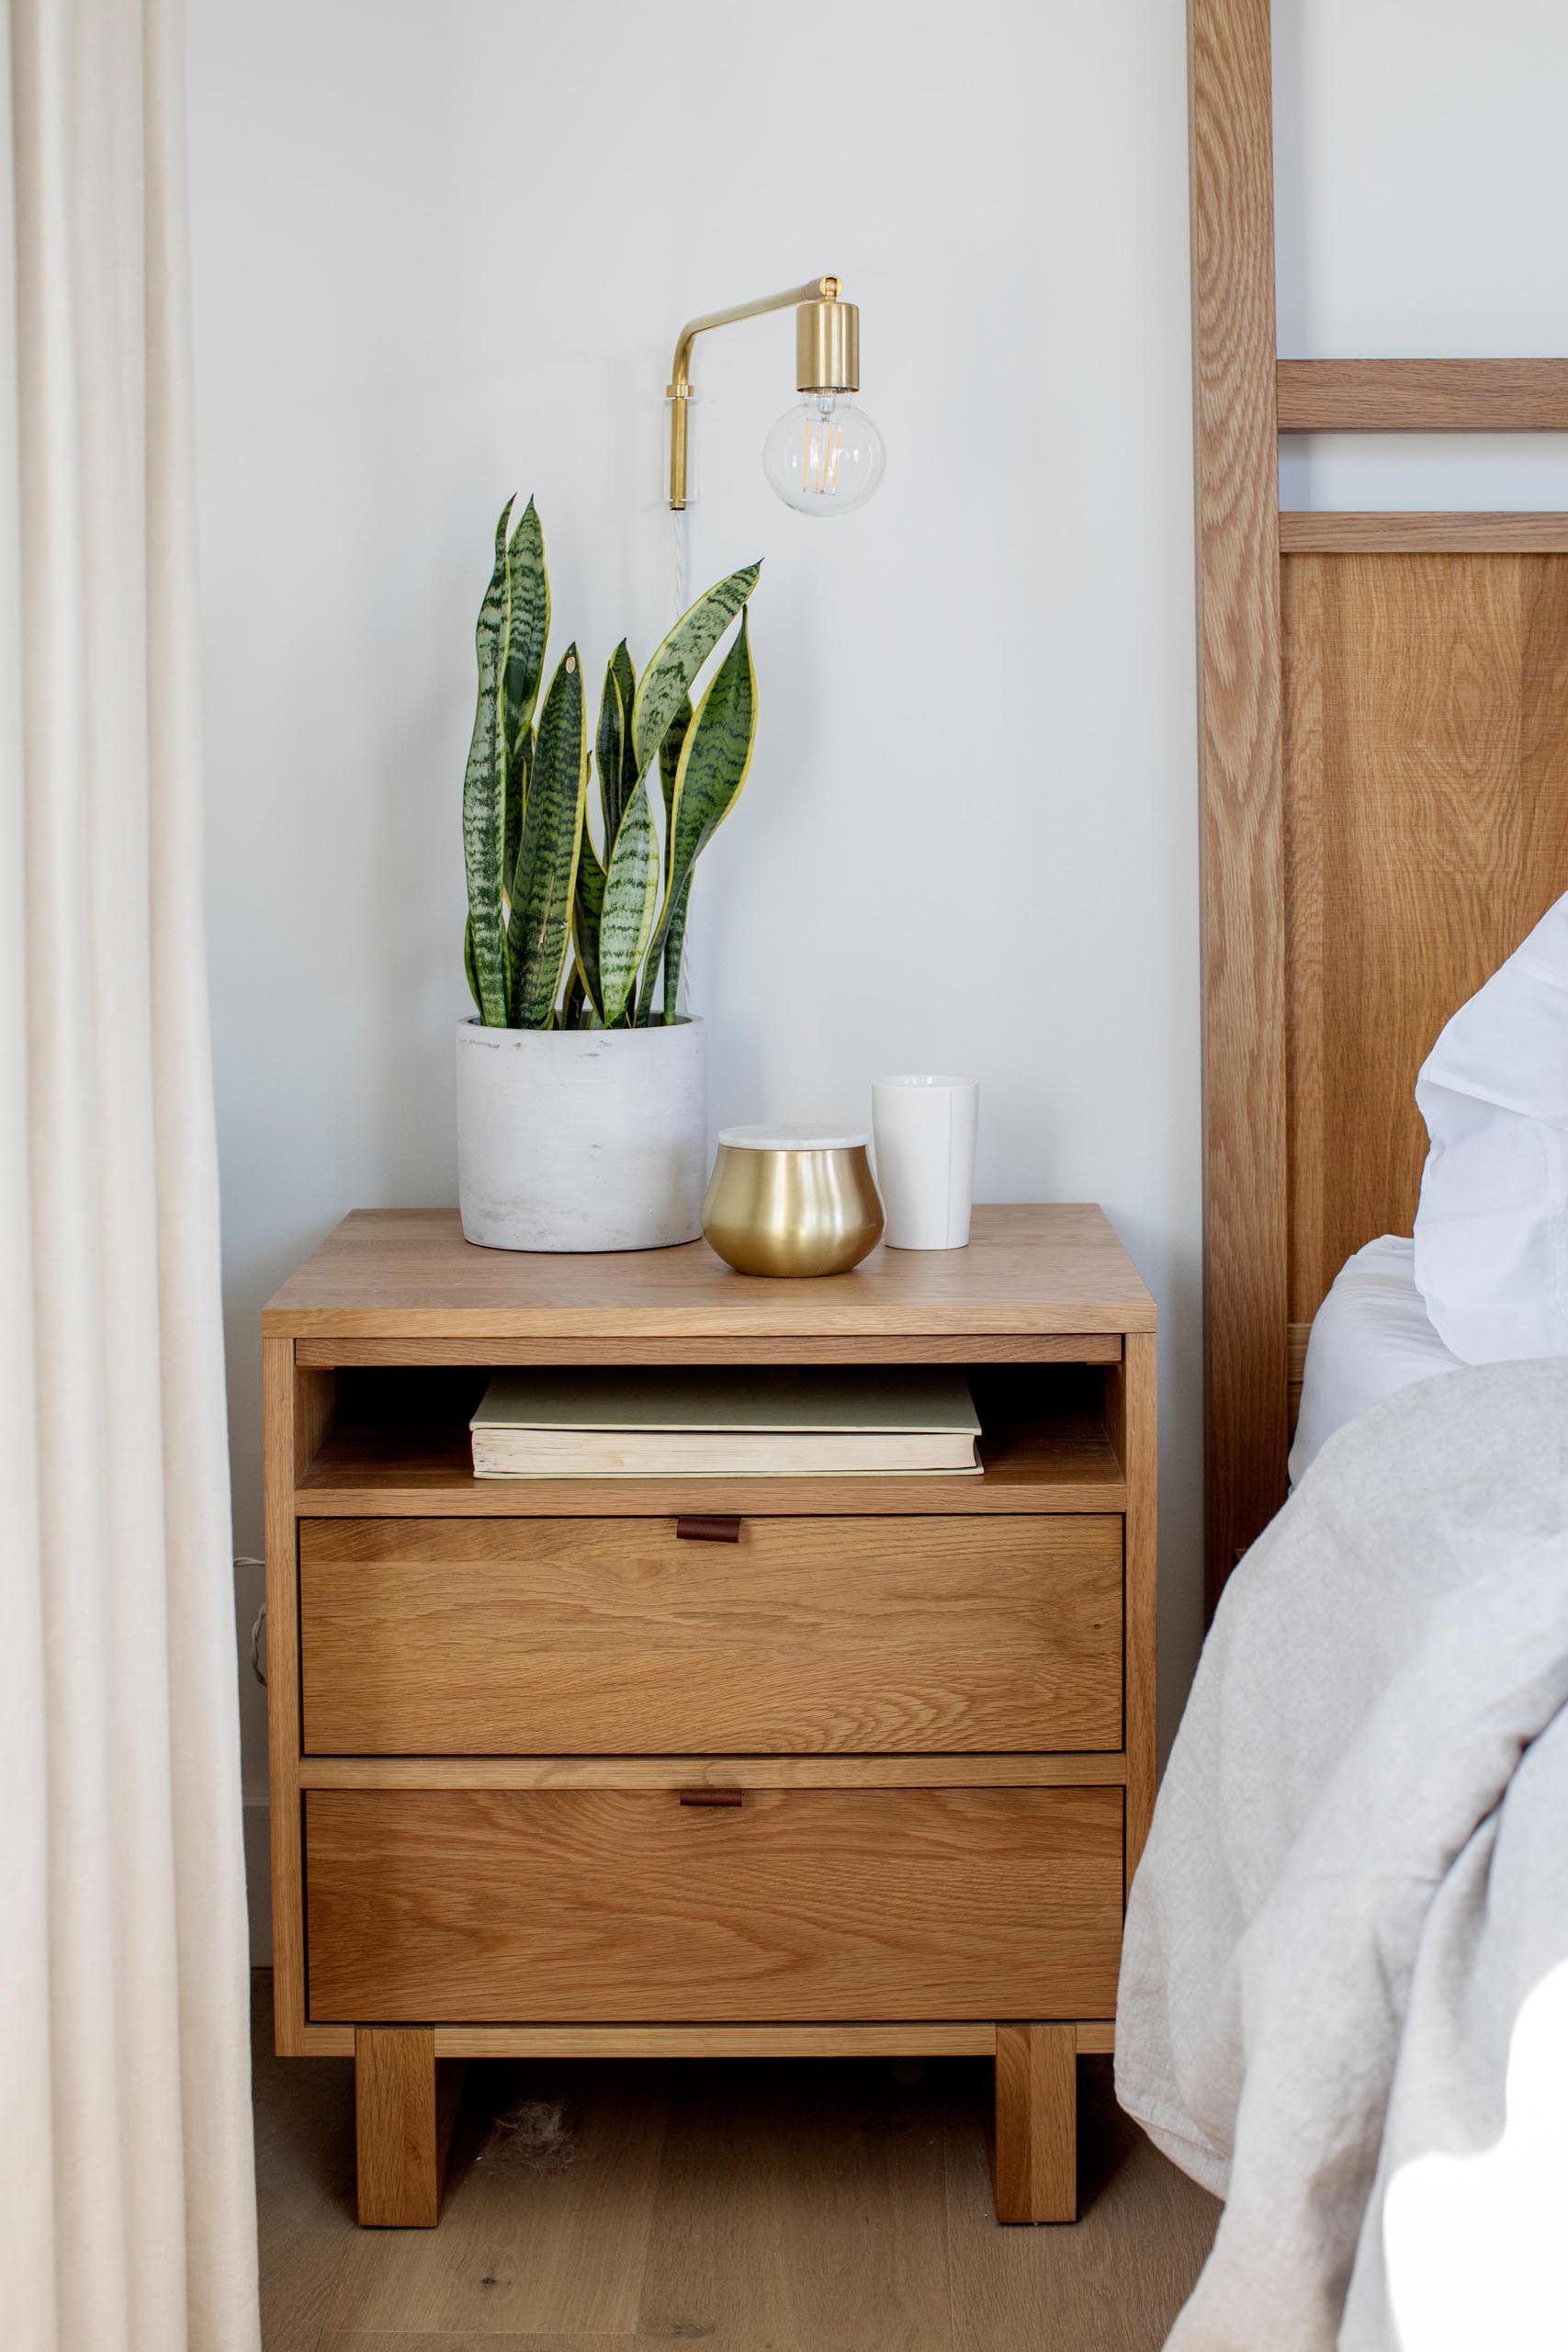 A contemporary wood bedside table with a plant and wall lamp.